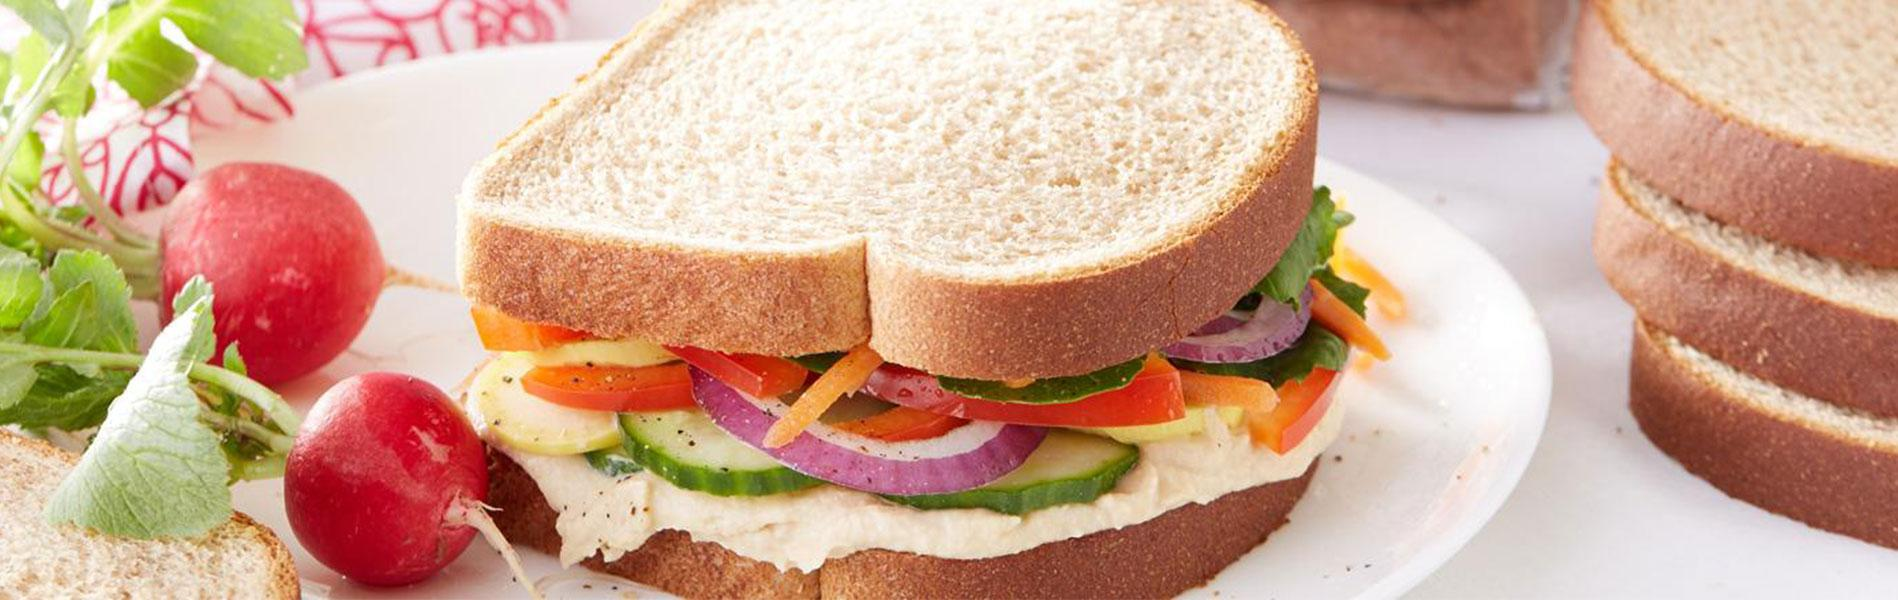 Hummus and Veggies sandwich made with Whole Wheat Bread